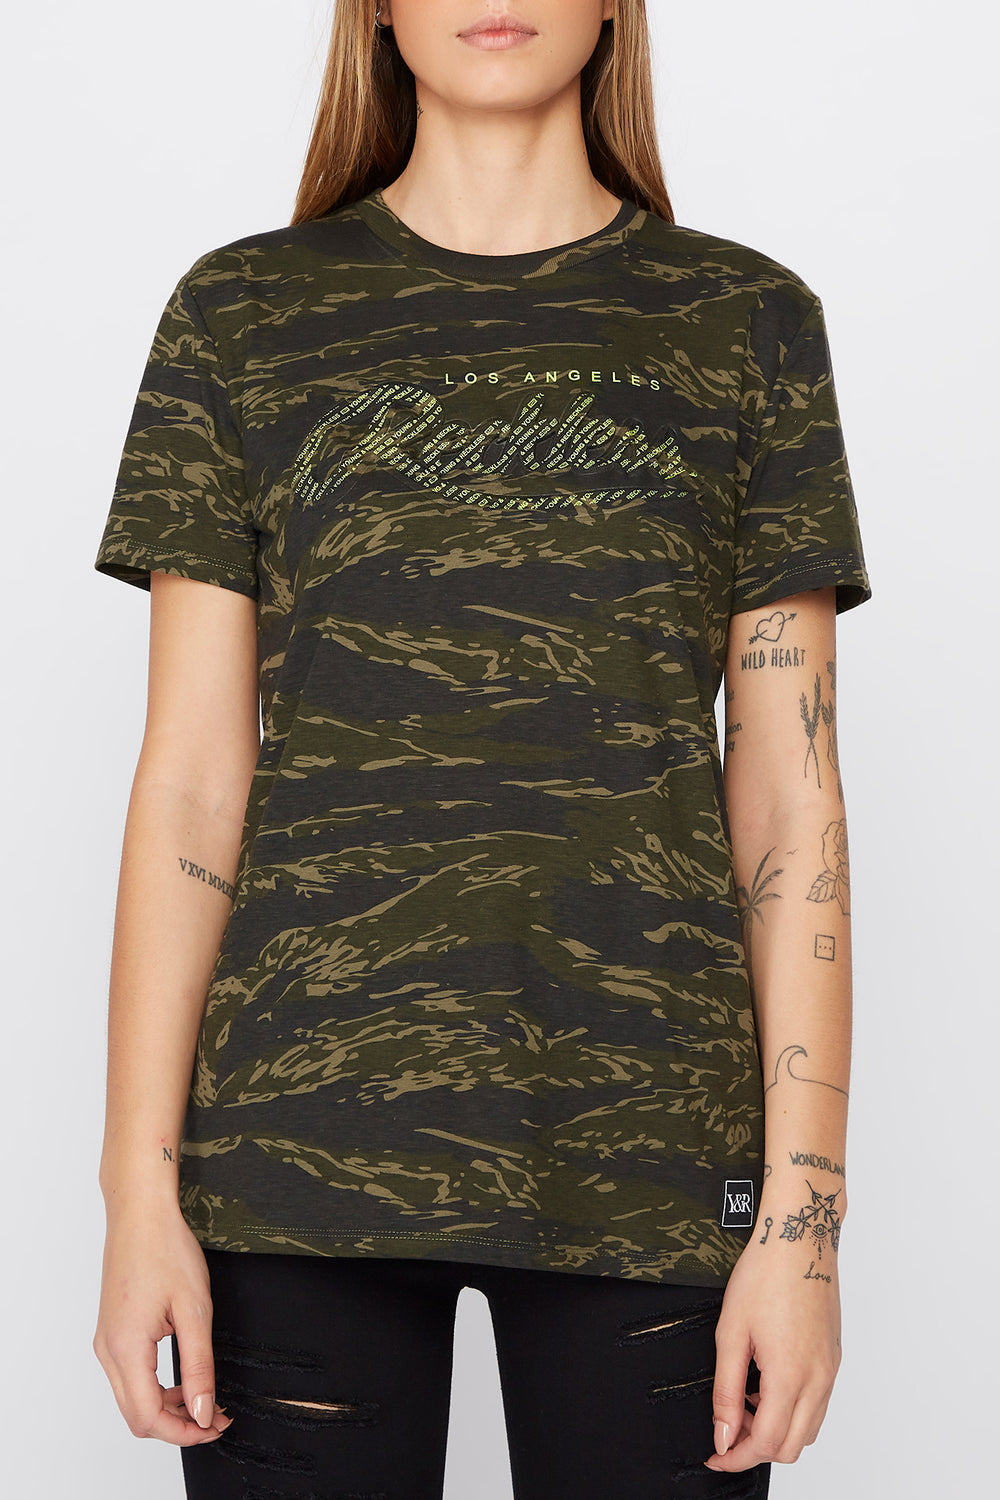 Young & Reckless Womens Camo & Neon T-Shirt Camouflage